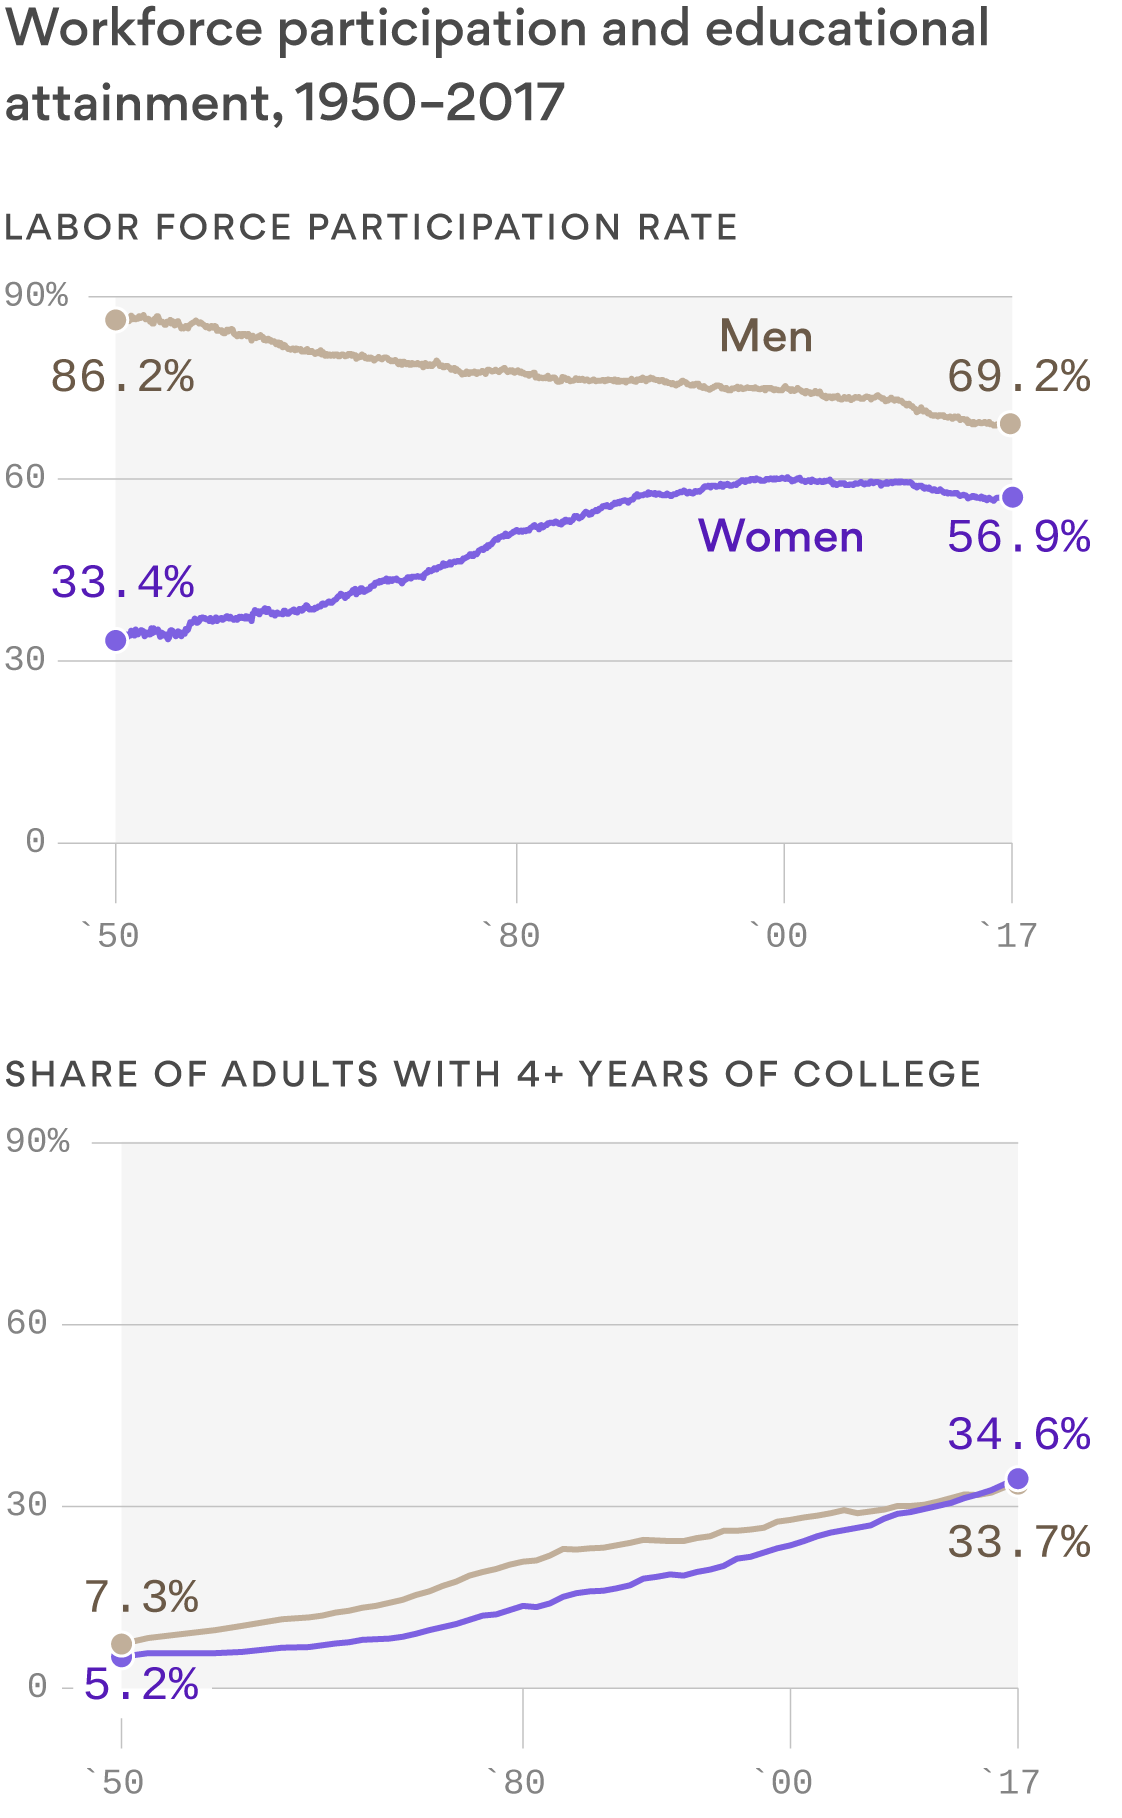 Women now more educated than men, but lag in workforce